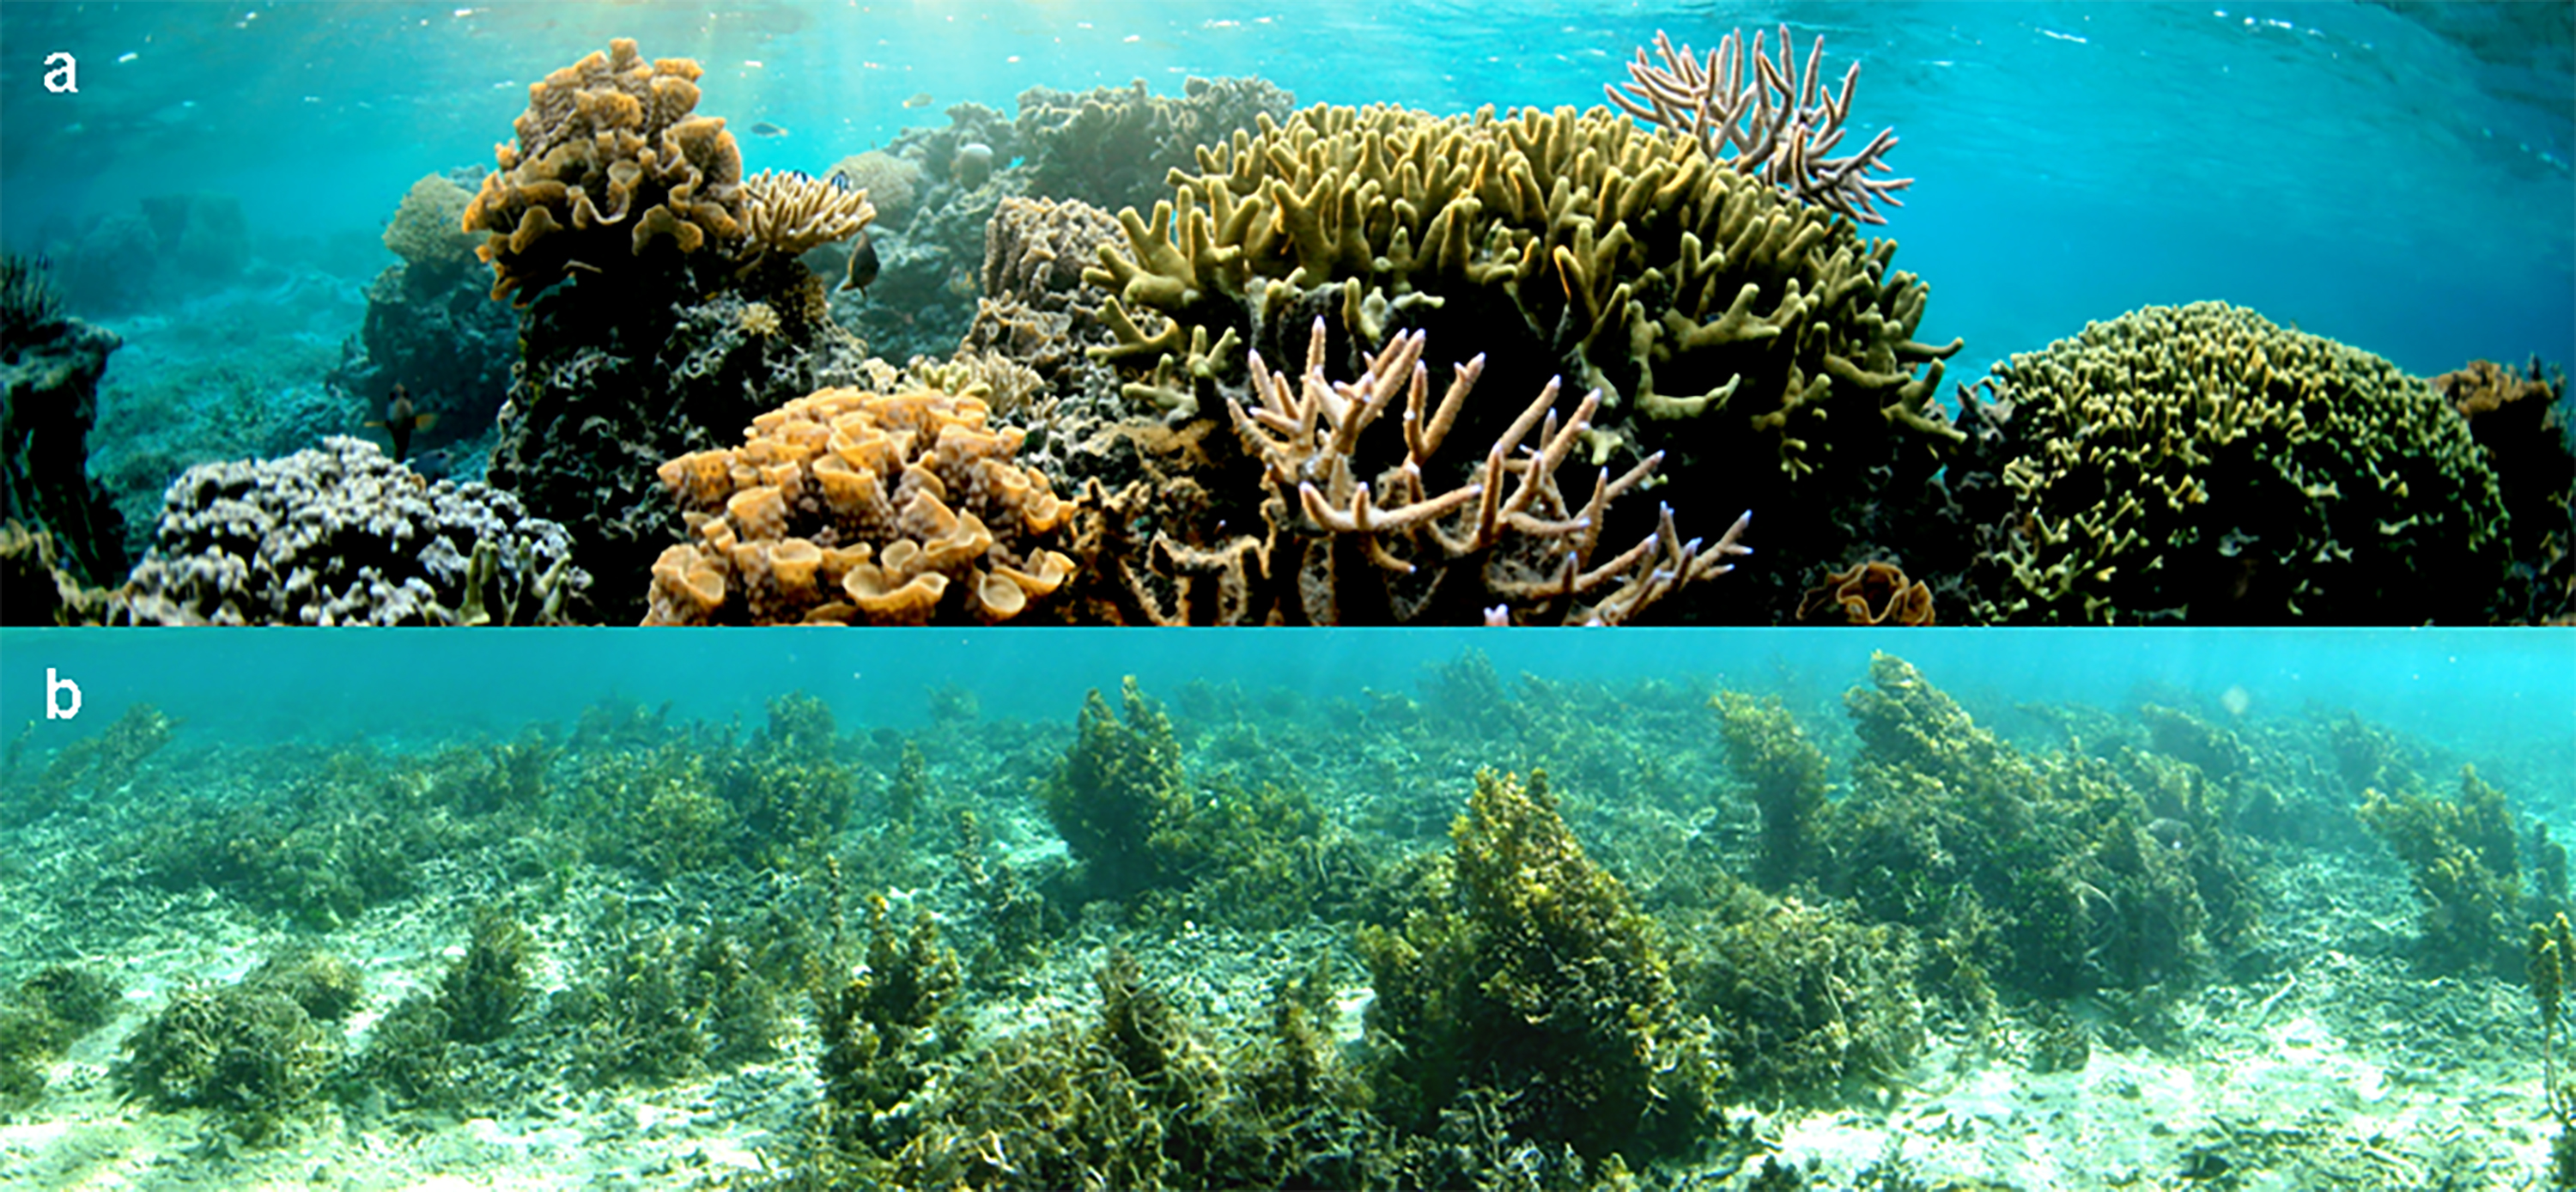 Regulated vs. unprotected Pacific reefs photo